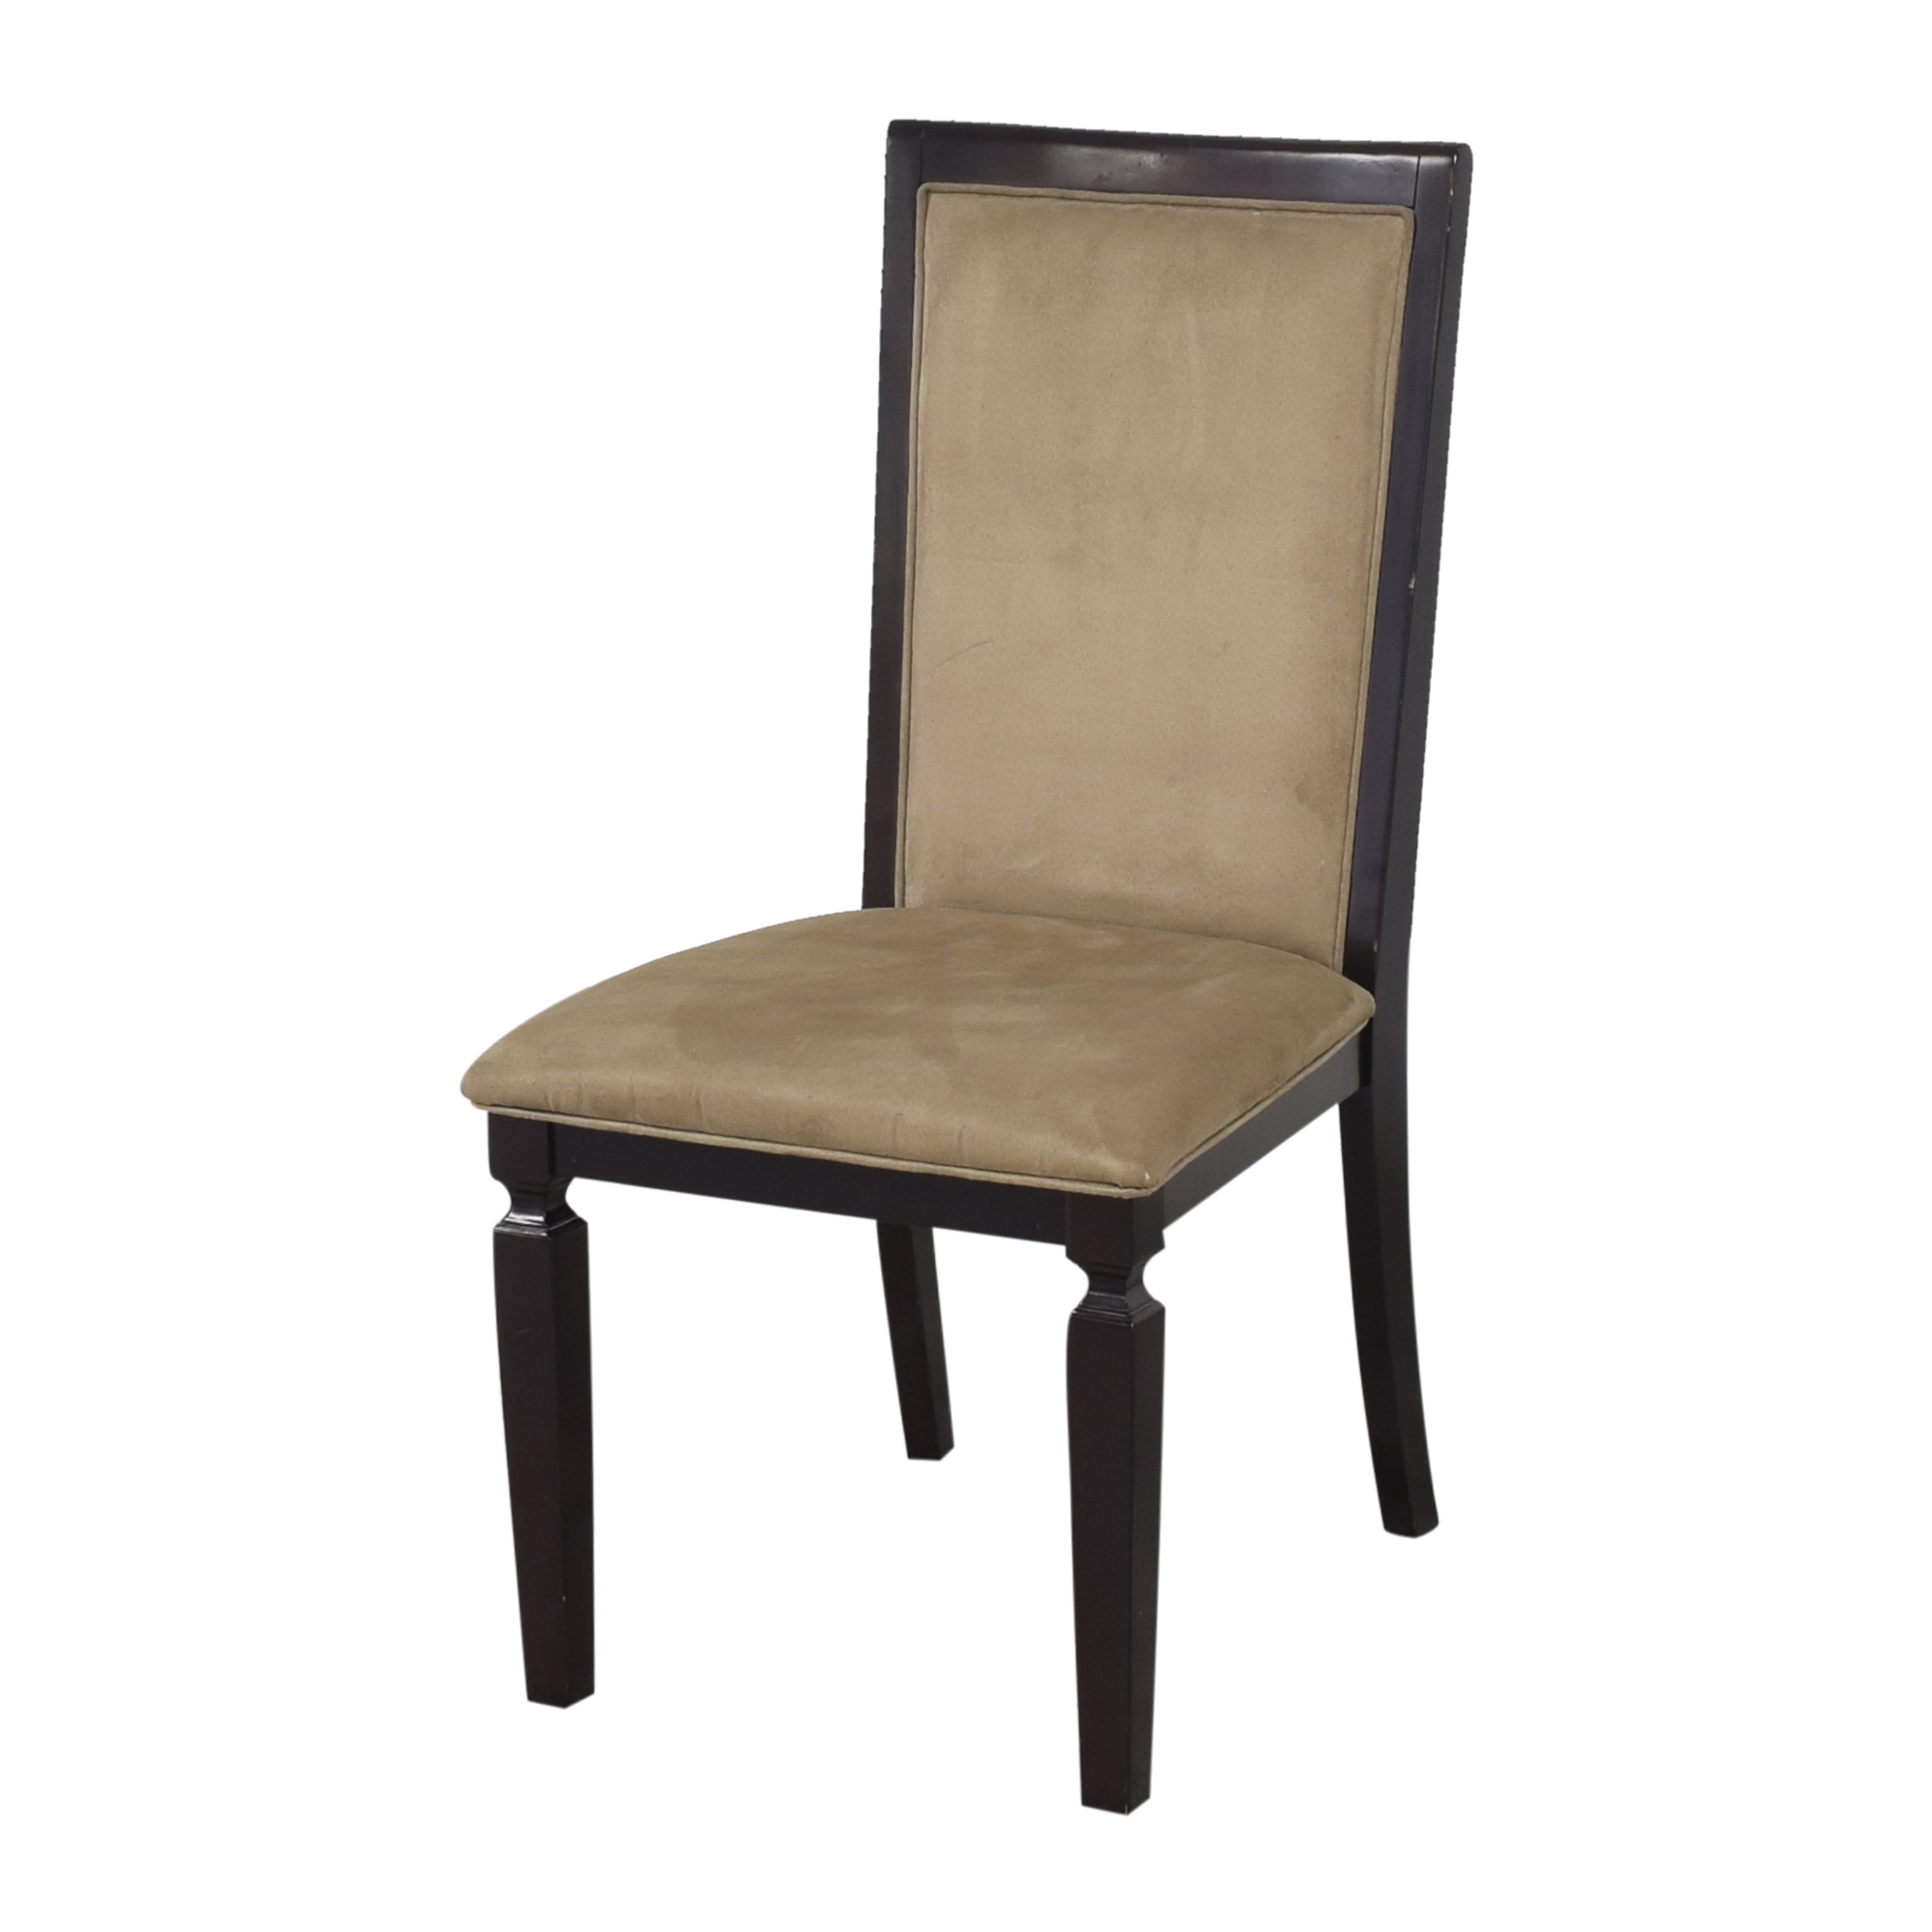 buy Homelegance Furniture Homelegance Furniture Dining Side Chairs online